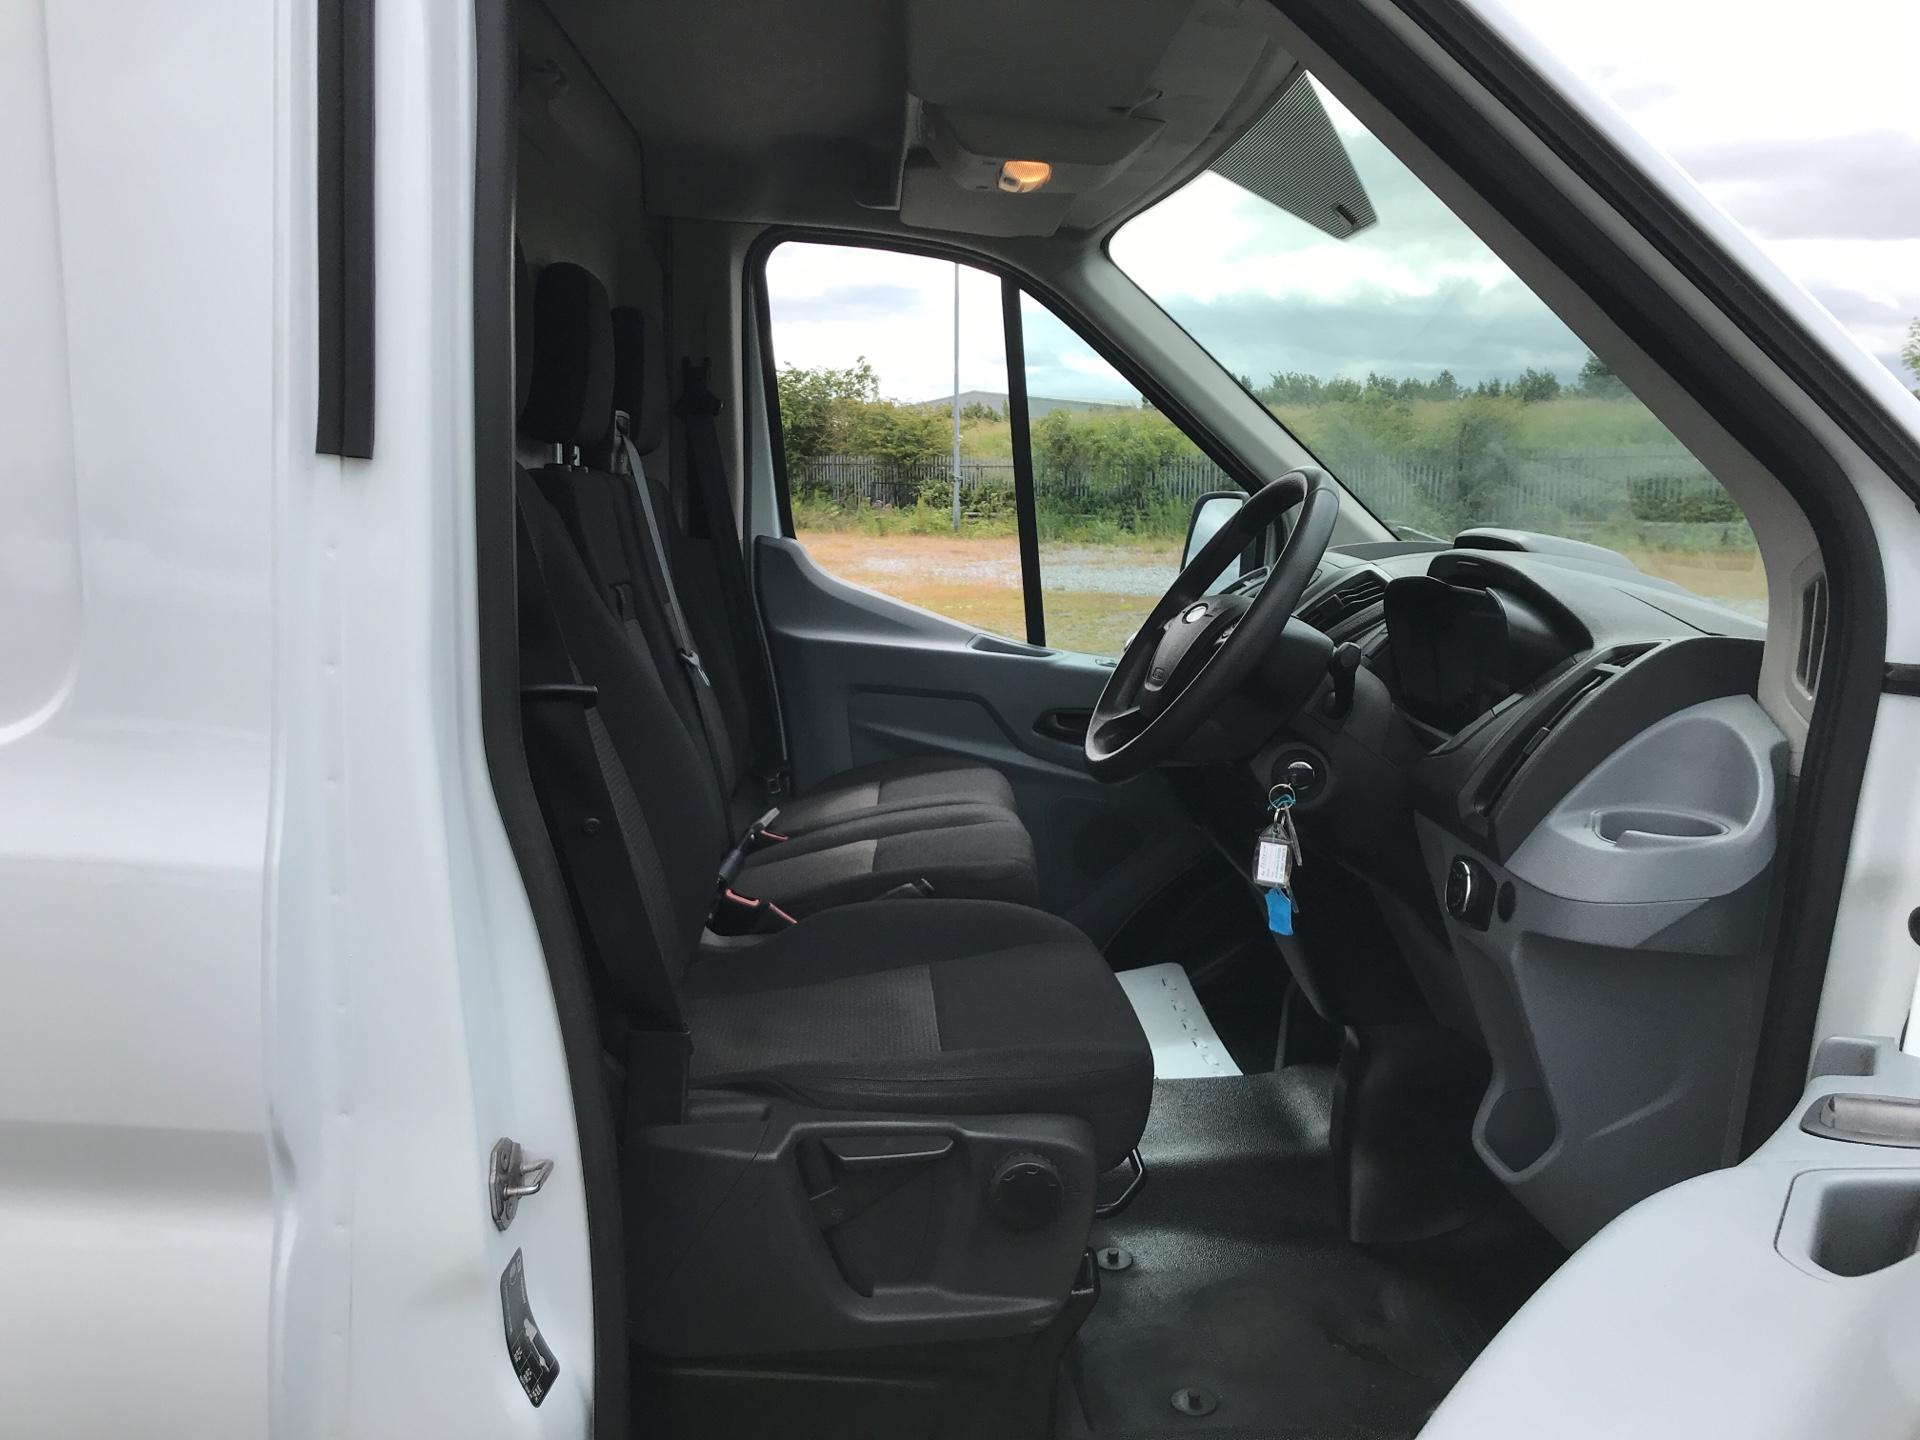 2017 Ford Transit 2.0 Tdci 130Ps H3 Van *VALUE RANGE VEHICLE CONDITION REFLECTED IN PRICE* (FL17VUW) Image 9